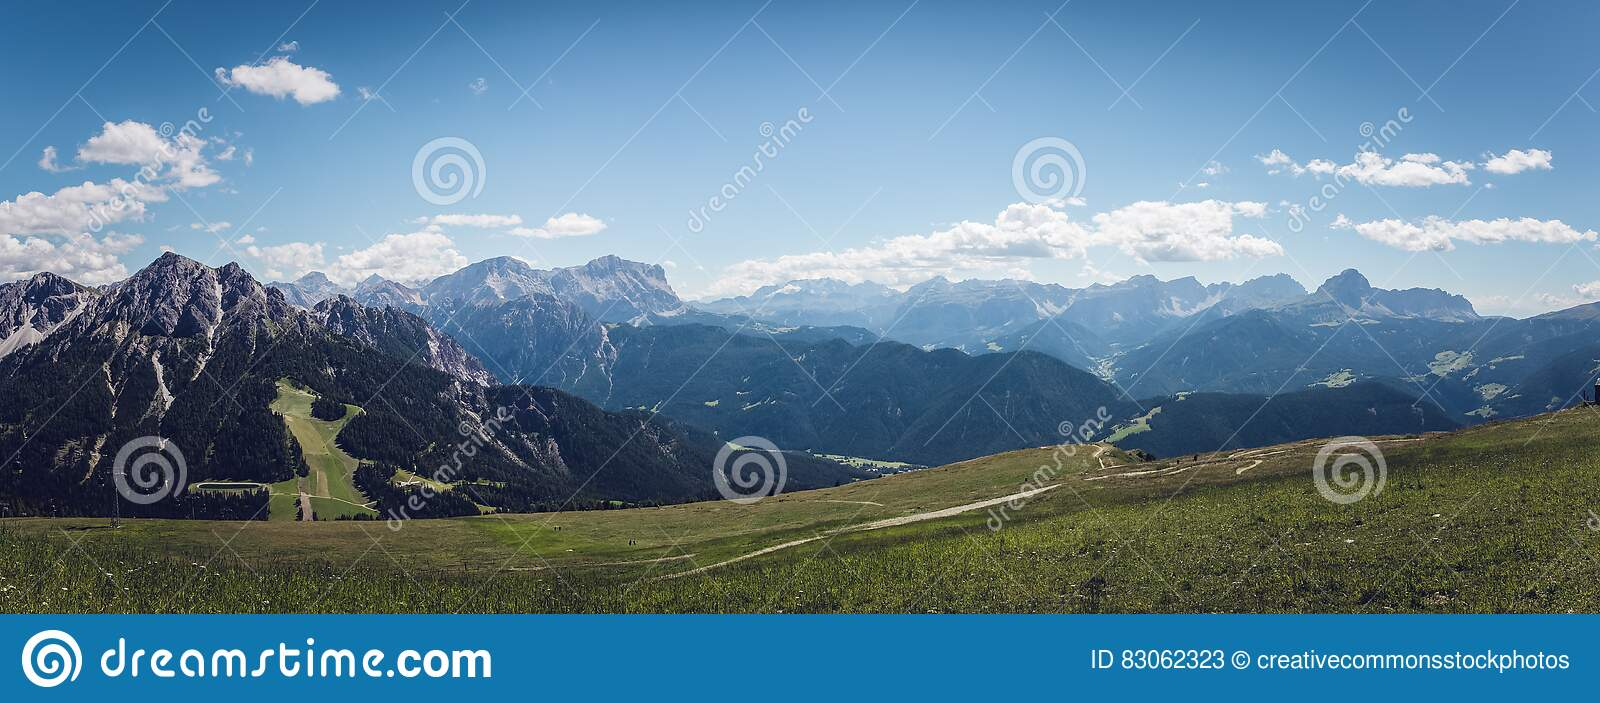 Free Public Domain CC0 Image  Landscape Photo Of Mountains During ... 95d9afb31fd